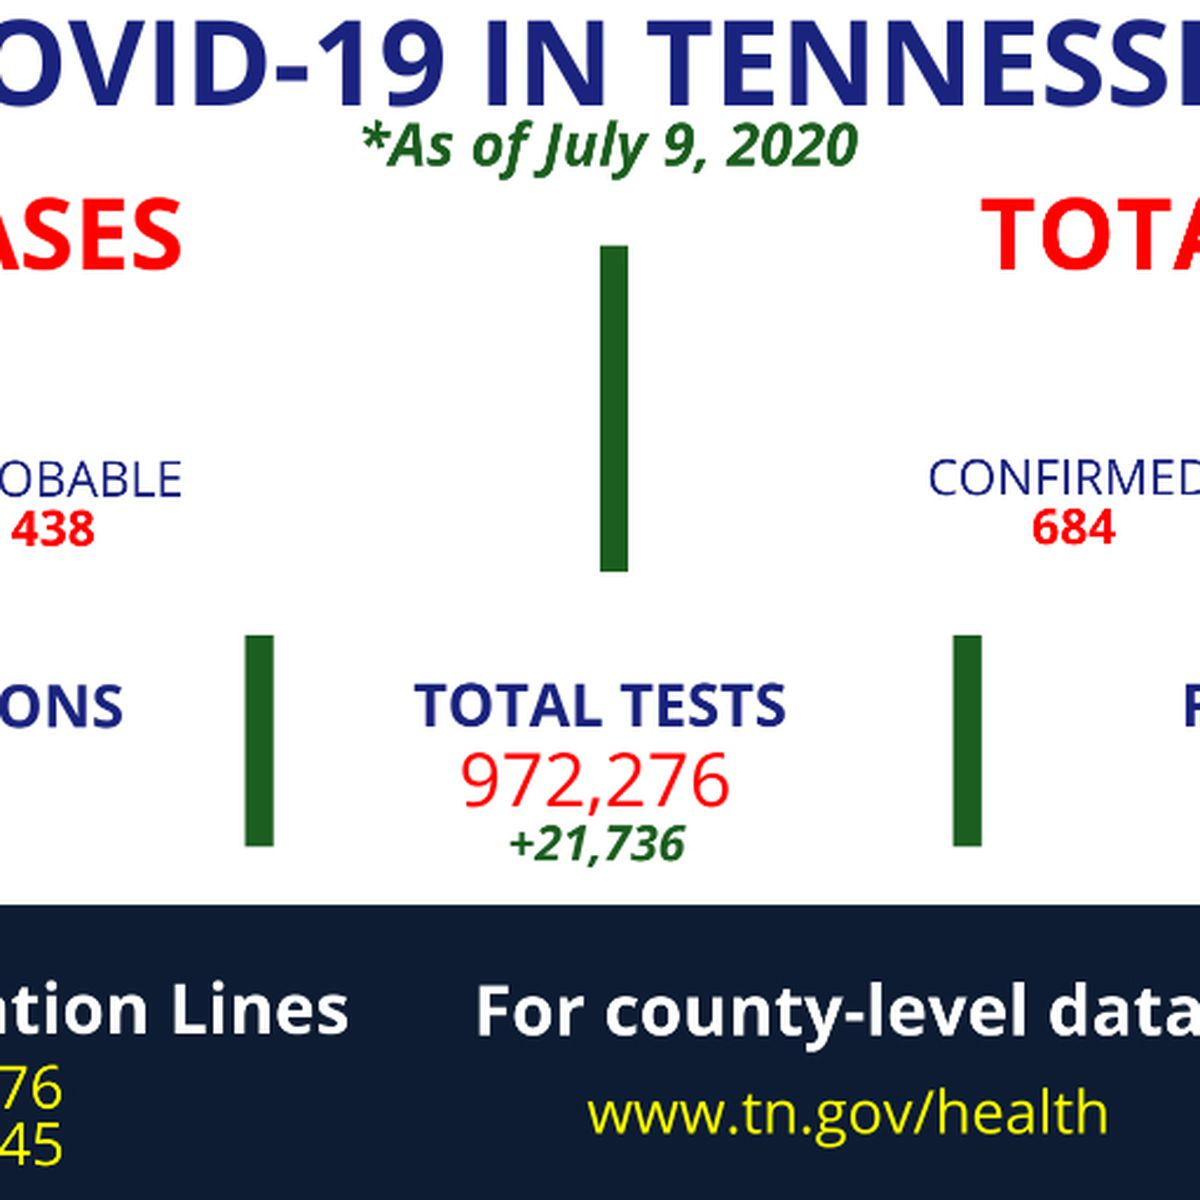 TDH: More than 1,600 new cases of COVID-19 identified in Tennessee